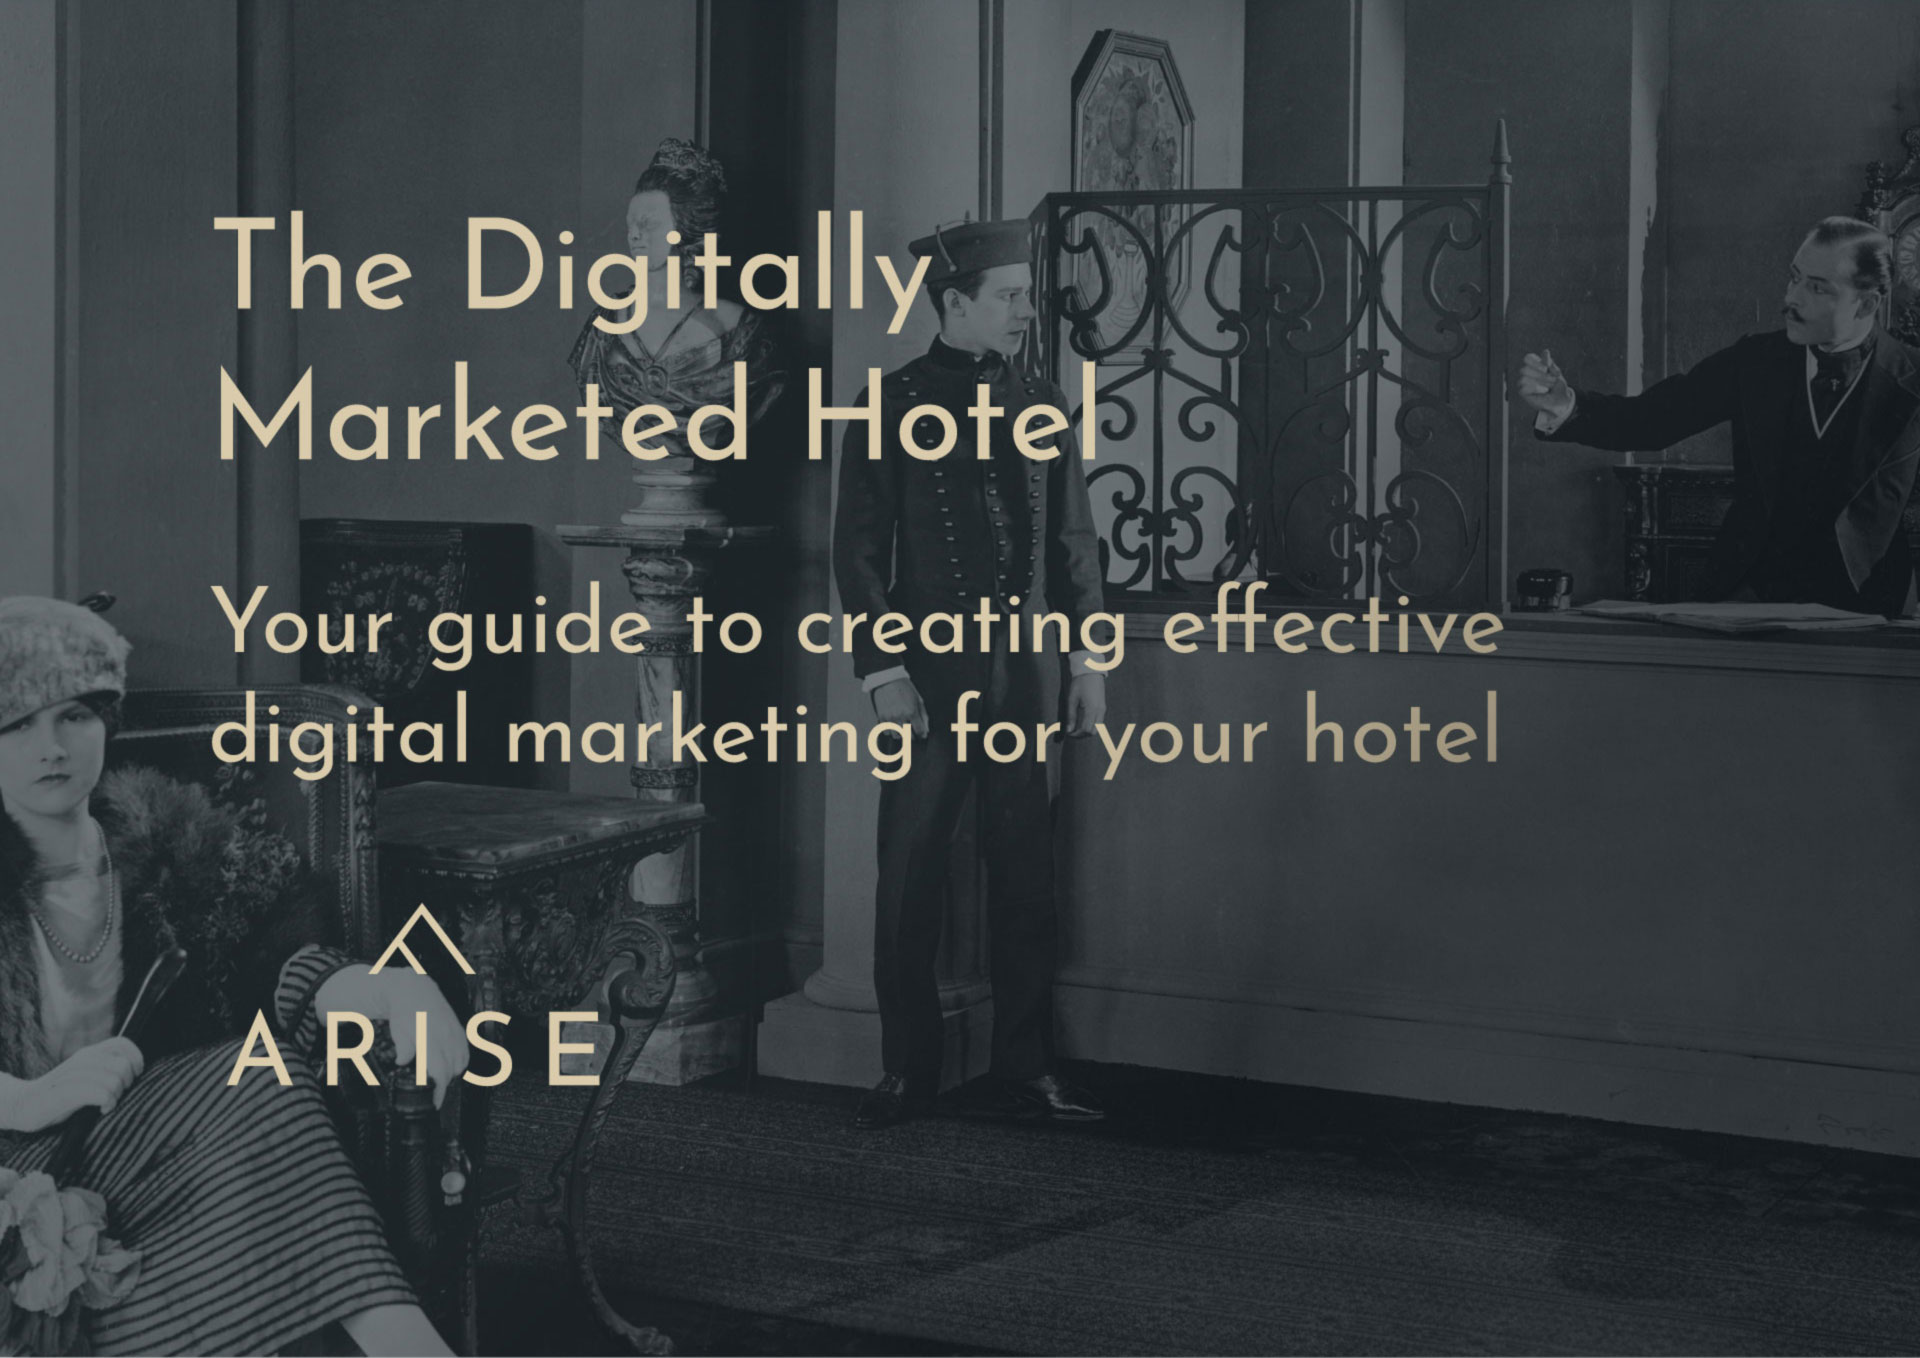 The Digitally Marketed Hotel - Your guide to creating effective digital marketing for your hotel. Request your FREE copy.